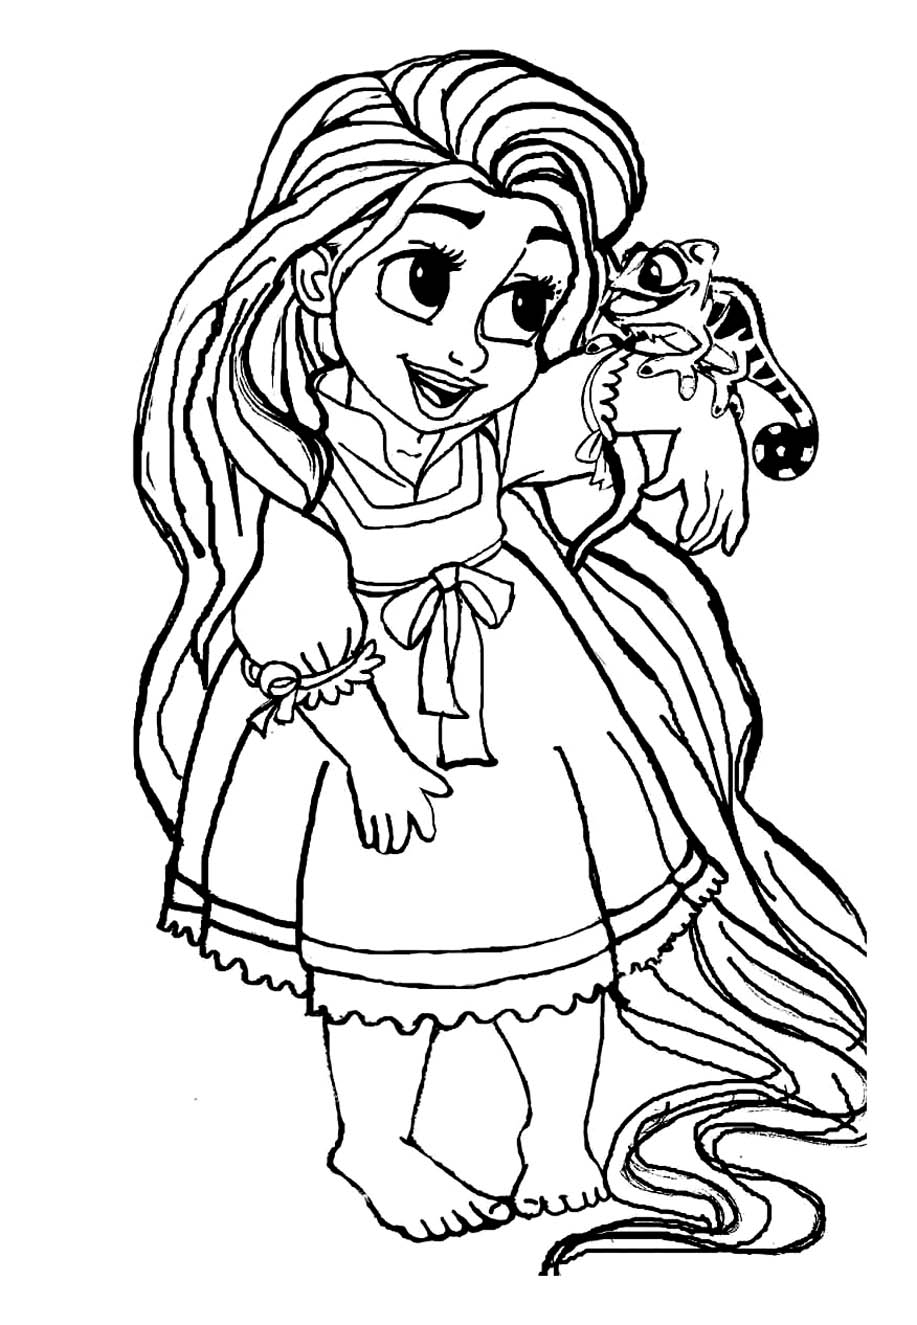 Tangled to print for free - Tangled Kids Coloring Pages